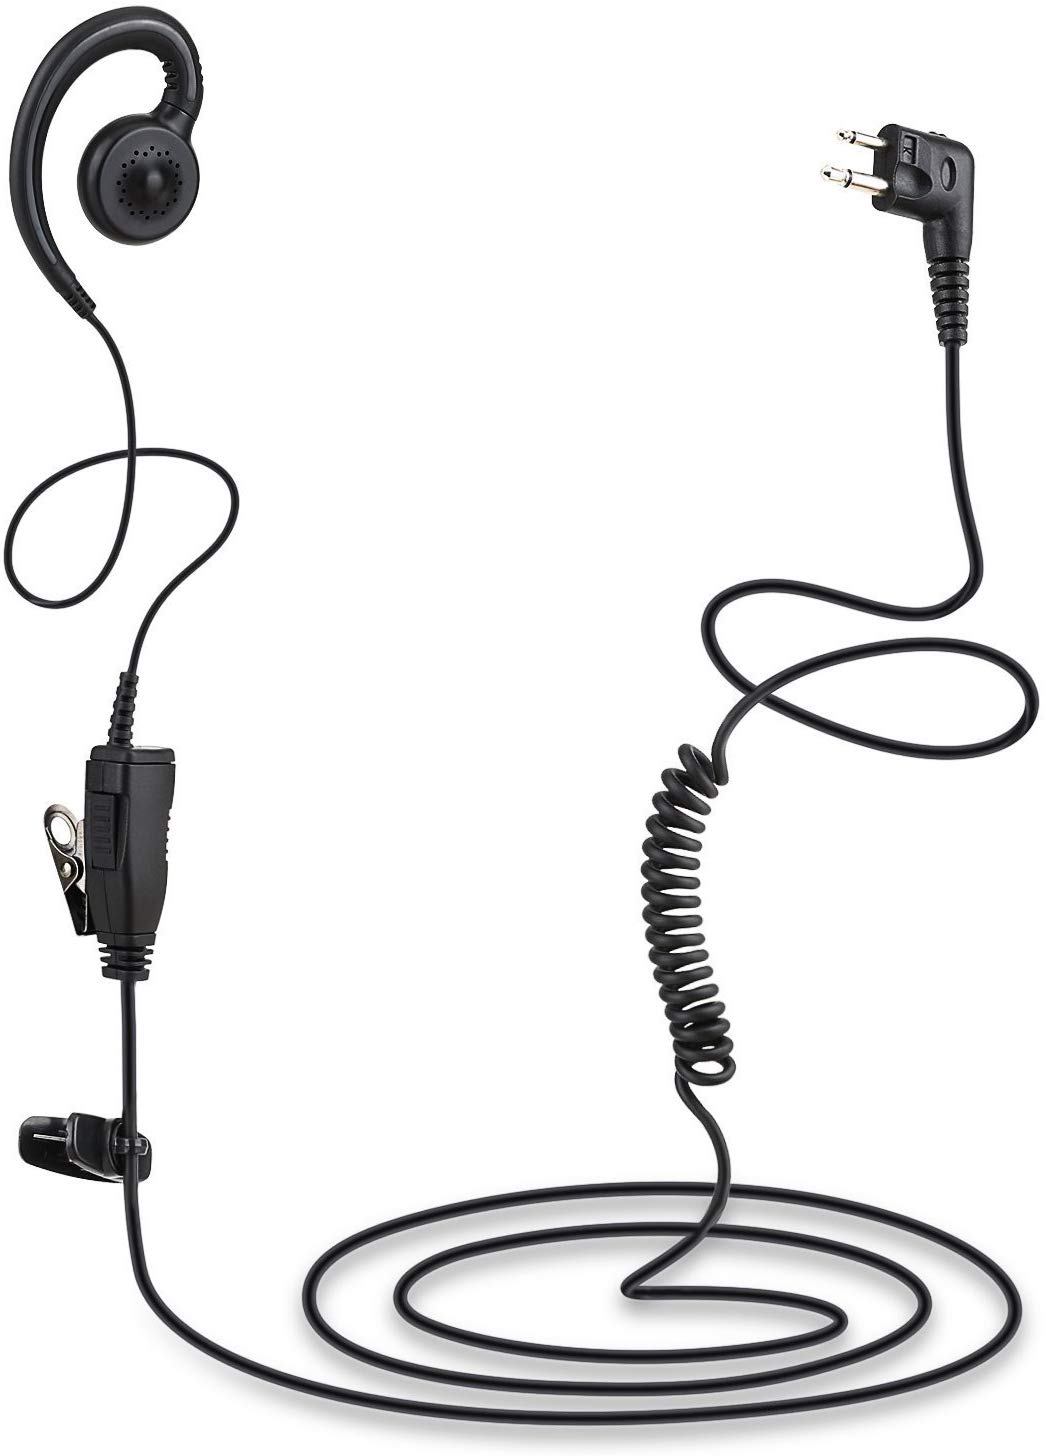 180° Rotatable Walkie Talkie Swivel Earpiece Intercom Earphone with Microphone and PTT for Motorola Portable Two-way Radio CLS1410, CLS1100, HKLN4604A black